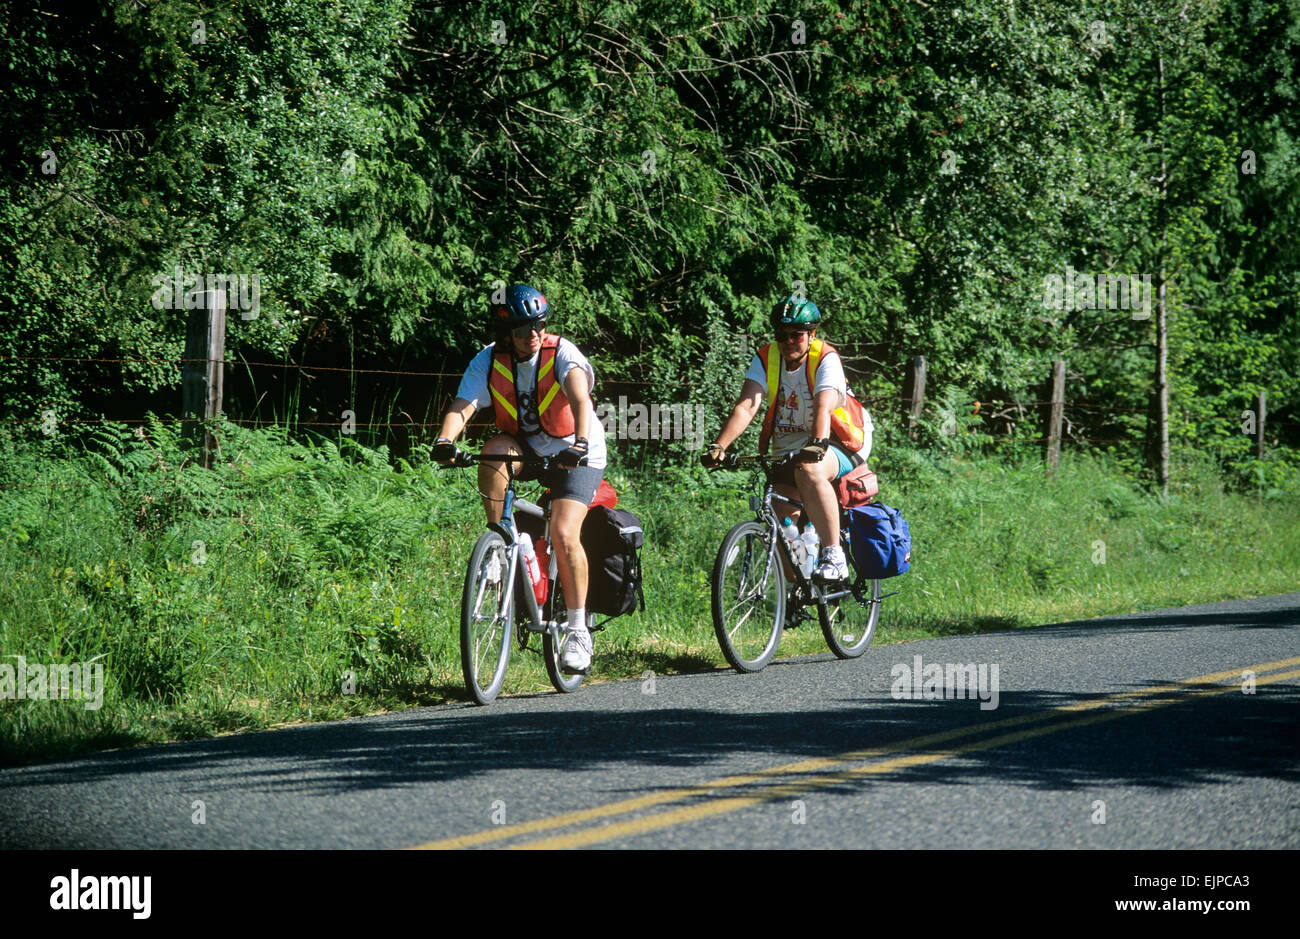 Cycling is the preferred mode of transportation on Lopez